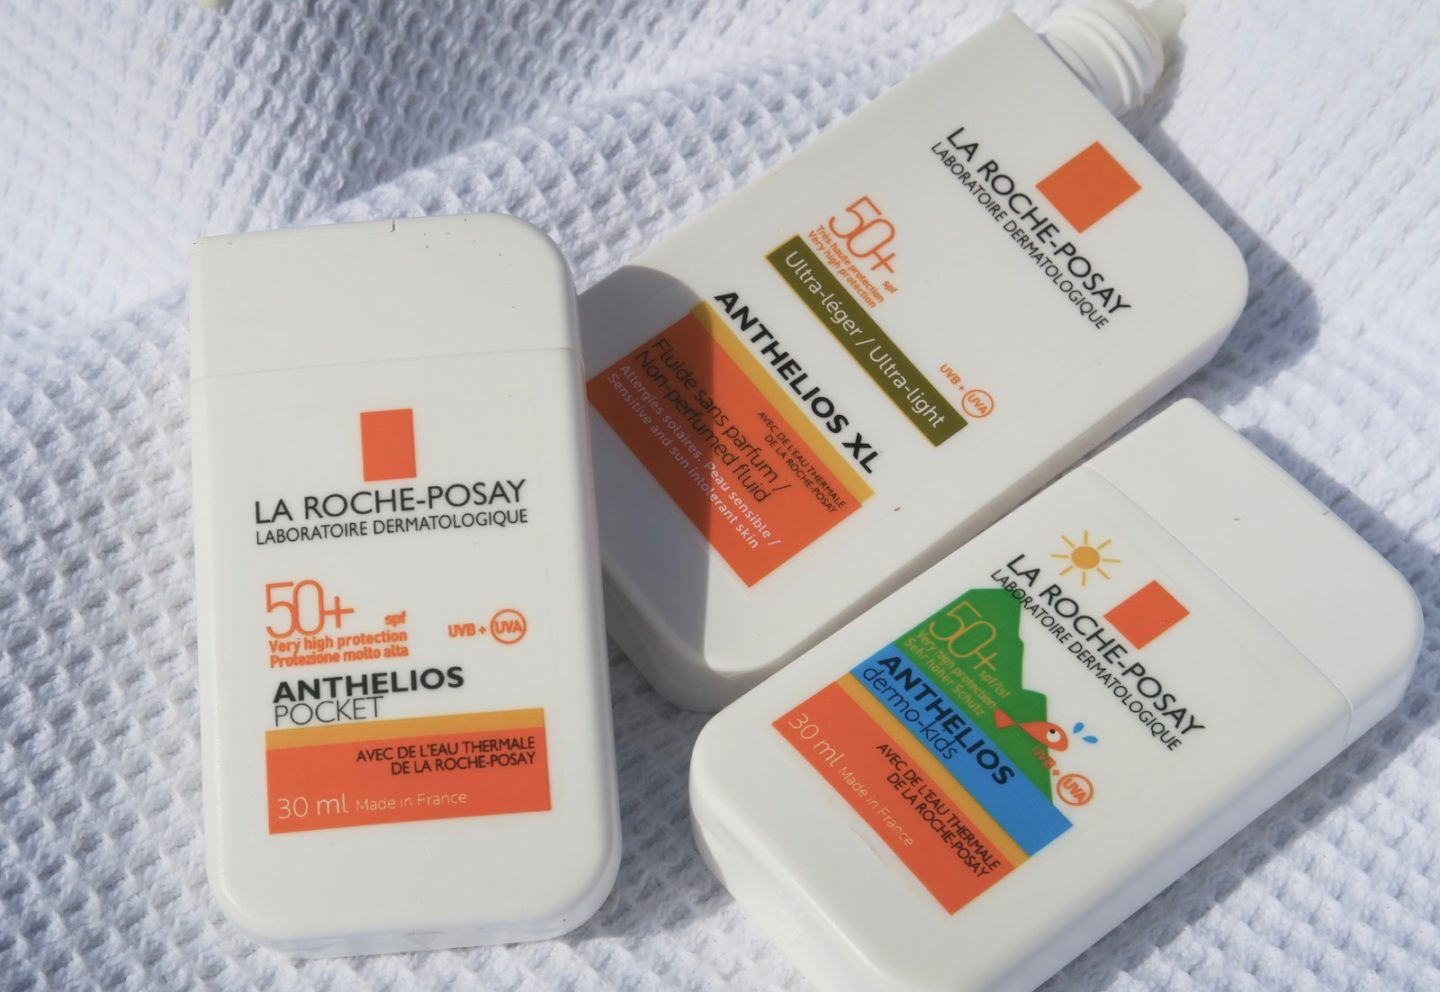 La Roche-Posay Anthelios XL Sunscreen Review